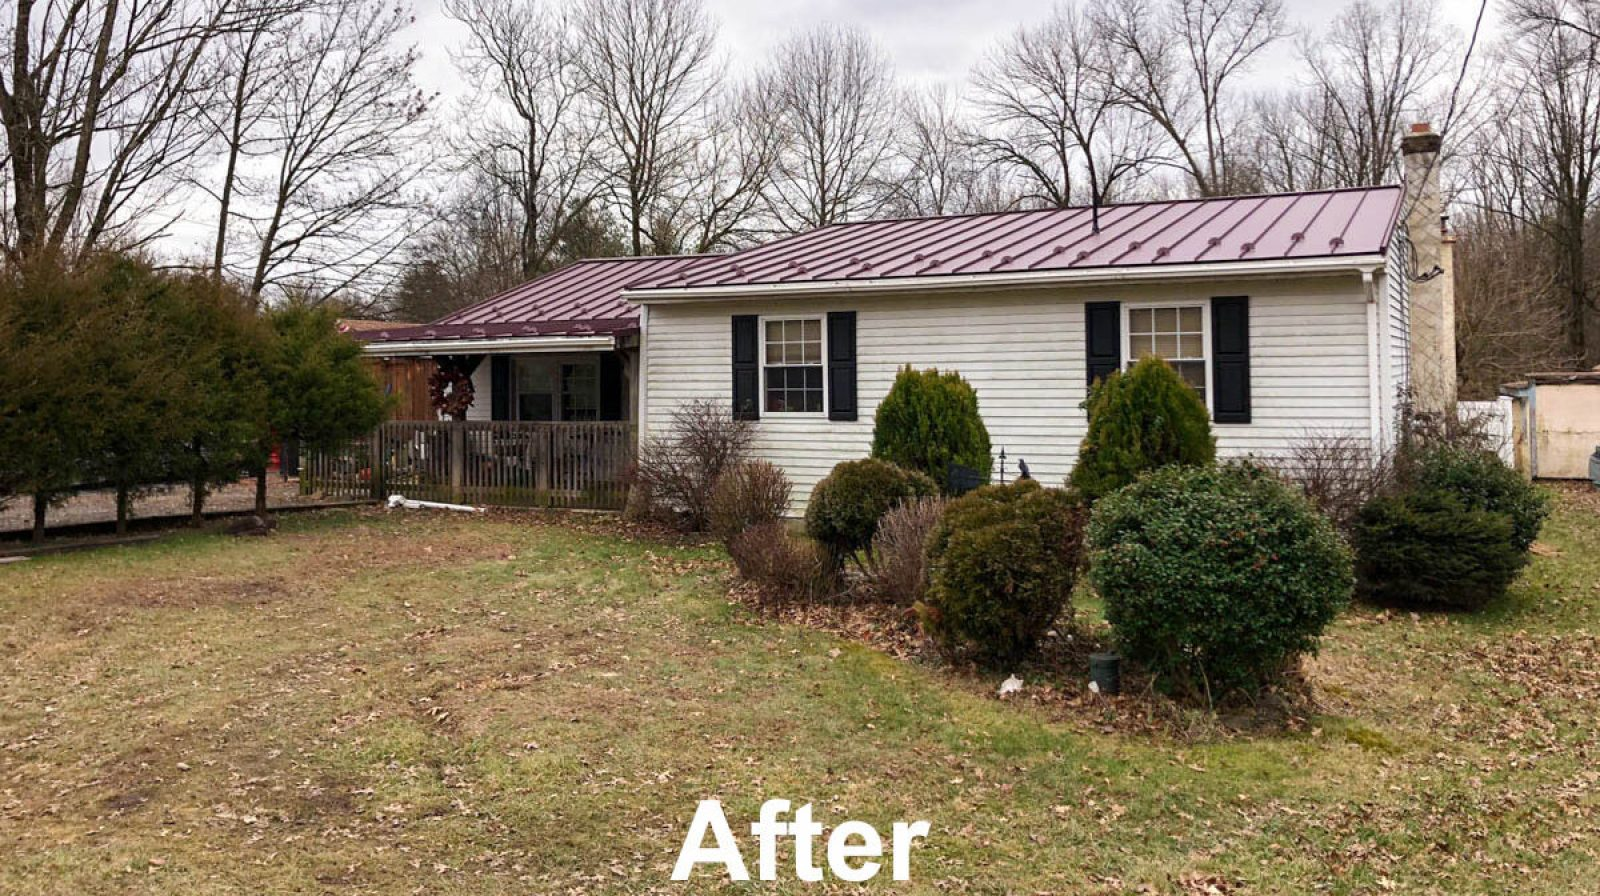 New Standing Seam metal Roof by Hillcrest Roofing and Siding